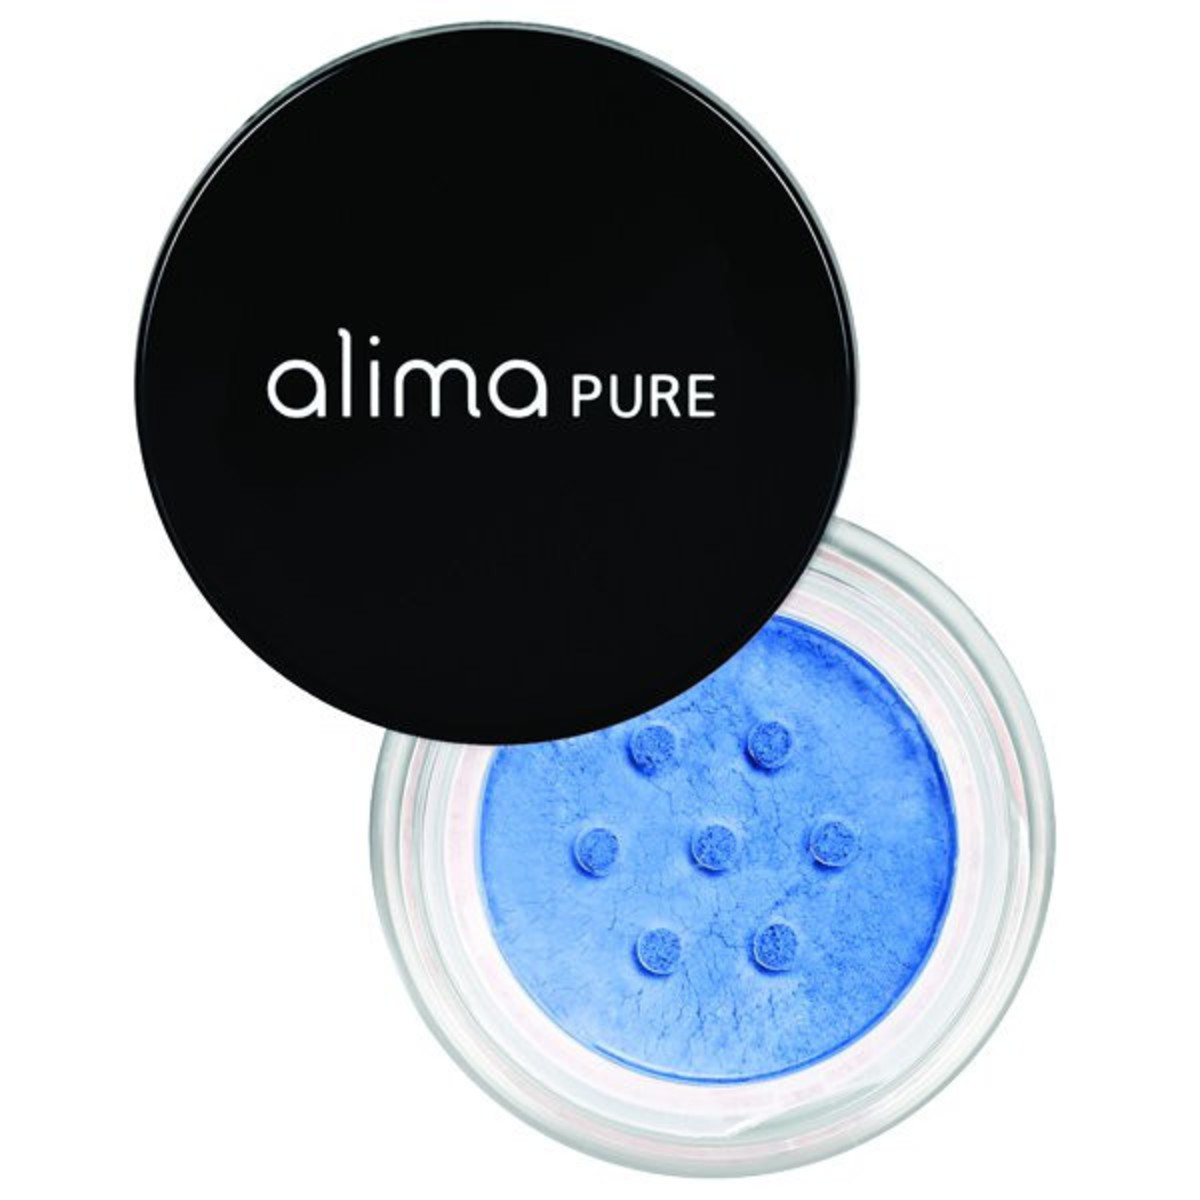 Alima Pure Satin Matte Eyeshadow in Cobalt